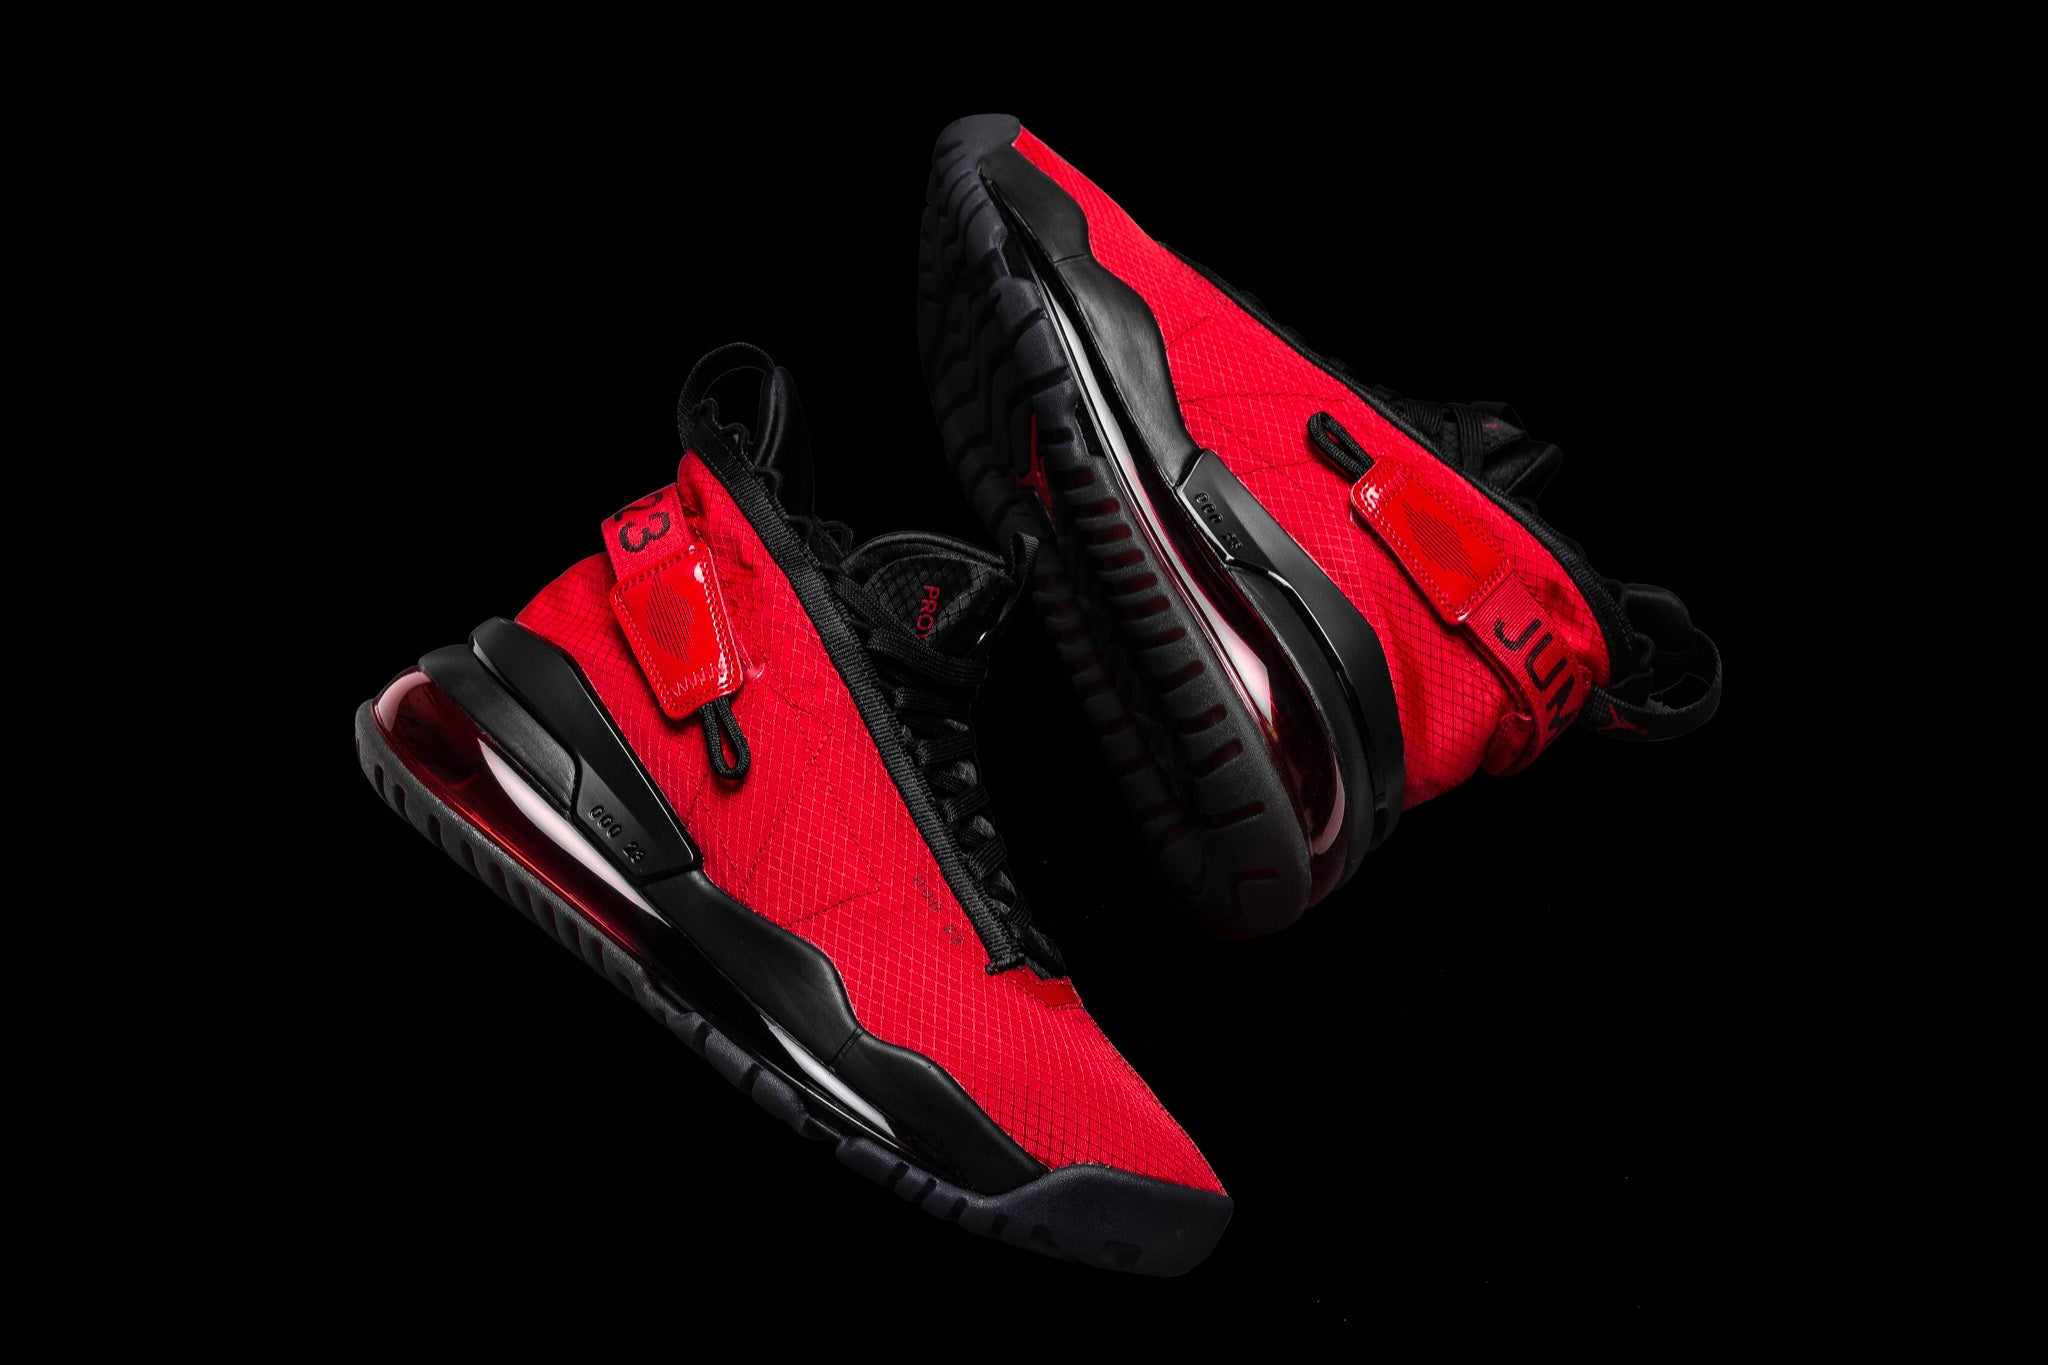 cheap for discount cd4a5 f8ab5 ... Nike Air technology fuses with Jordan design language to create a new  silhouette within Jordan Brand s Flight Utility range  the Jordan Proto-Max  720.